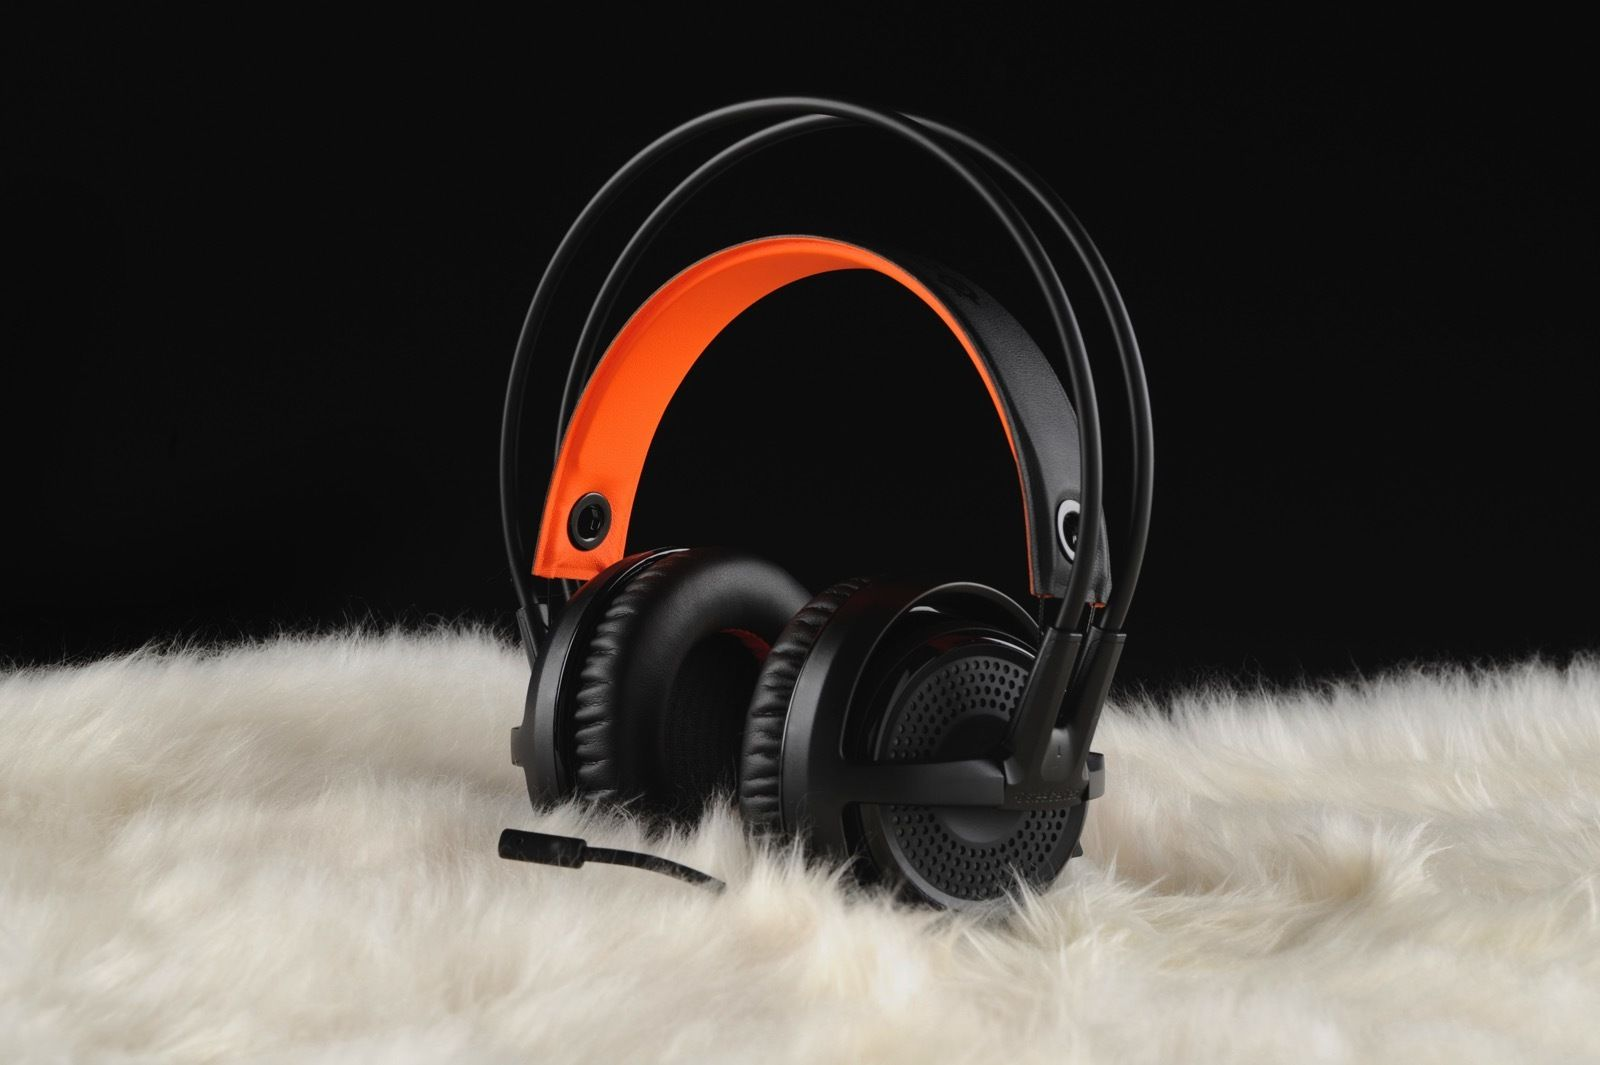 12 Gifts For The Gaming Geek In Your Life Holiday Gift Guide 2016 Steelseries Siberia 350 Black Is A Lightweight Usb Headset Designed Long Sessions Either Solo Or While Communicating With Team Via Voice Chat